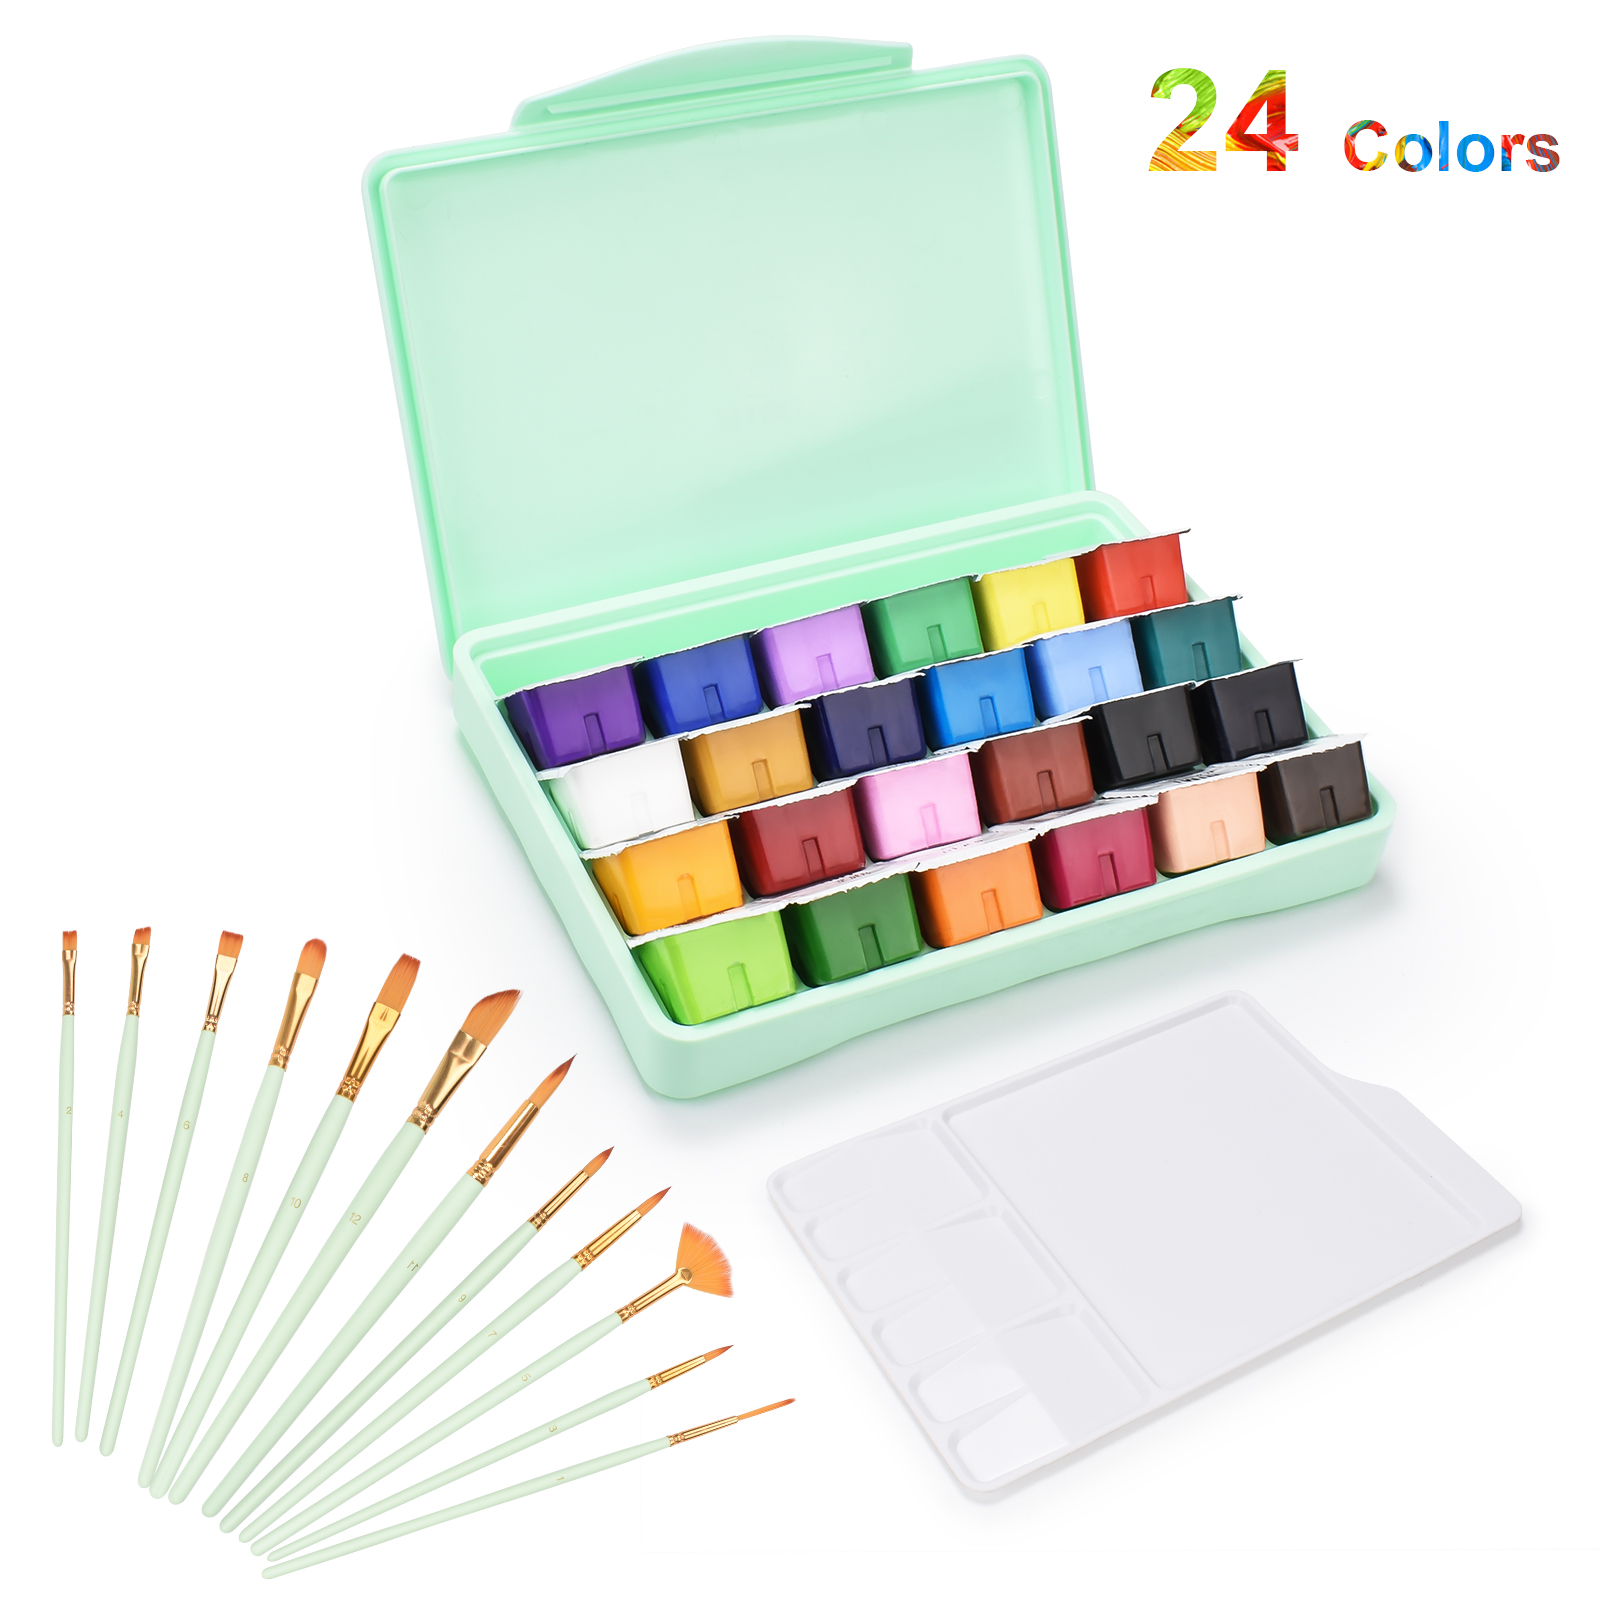 MIYA 24 Colors Gouache Paint Set Watercolor Paints 30ml Jelly Cup Design With Palette Paint Brushes For Artists Students